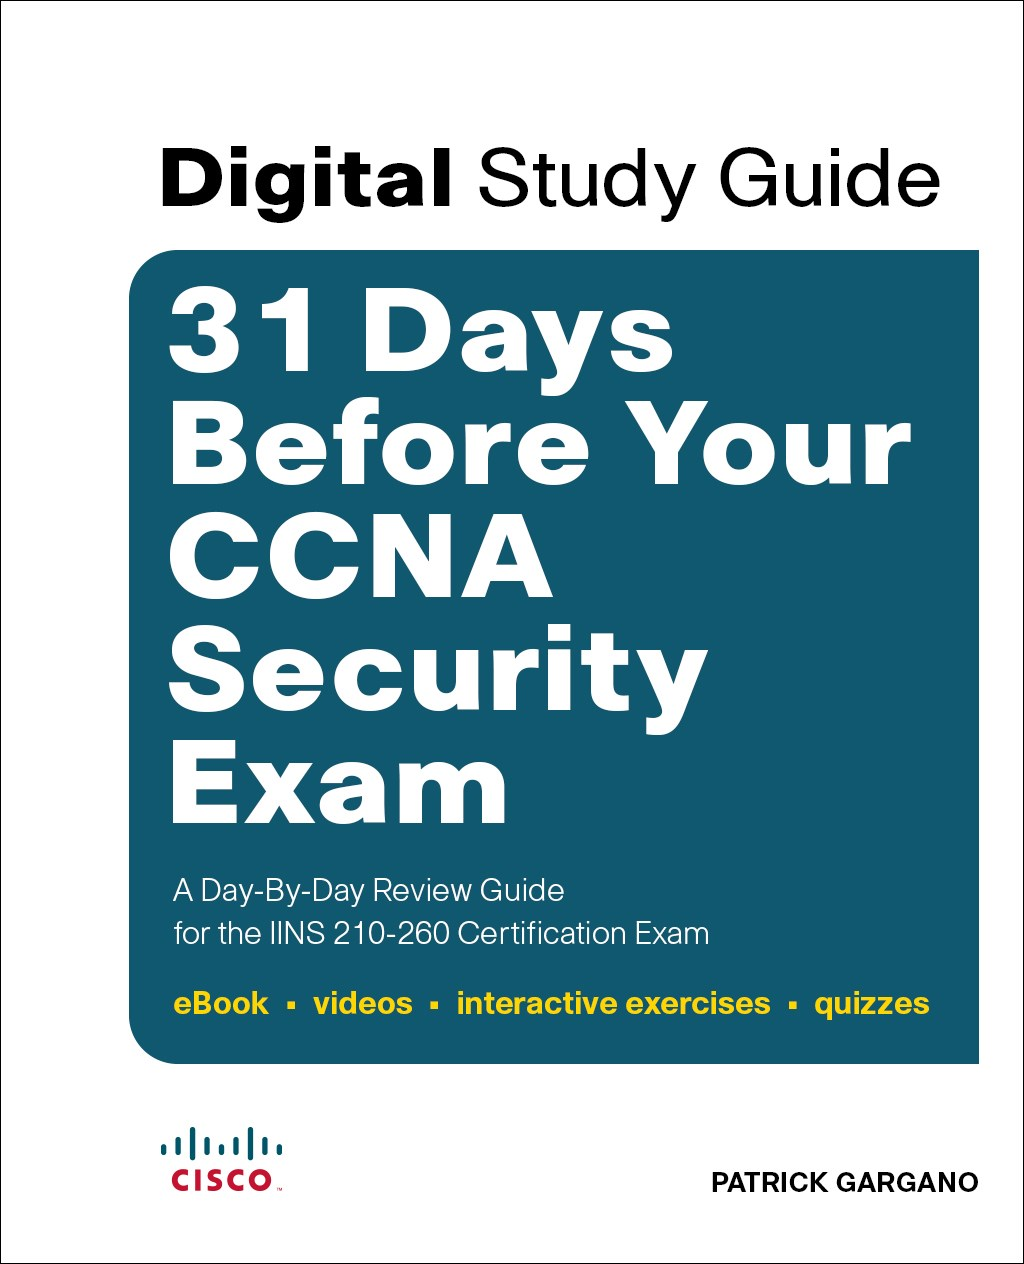 31 Days Before Your CCNA Security Exam (Digital Study Guide): A Day-By-Day Review Guide for the IINS 210-260 Certification Exam (eBook, videos, interactive exercises, quizzes)